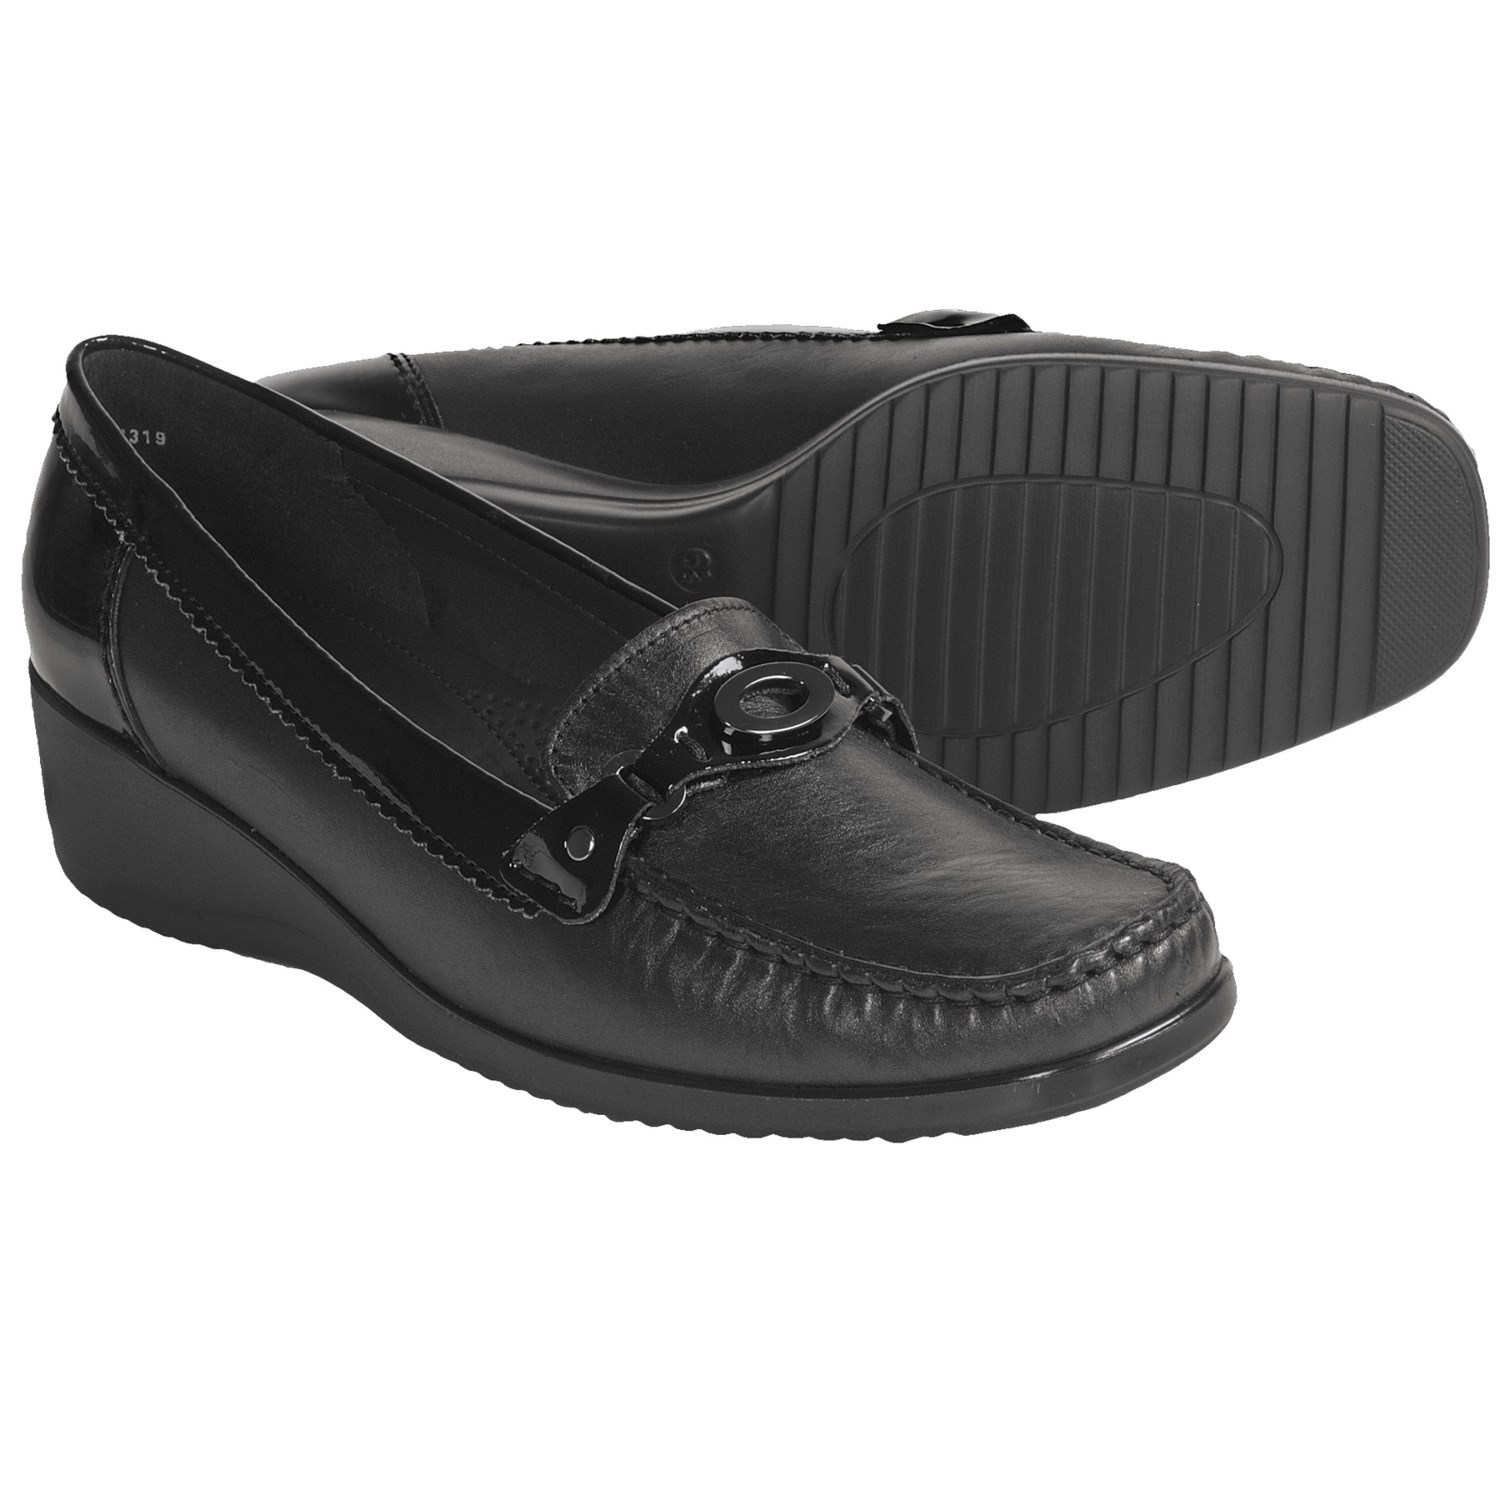 LADIES BLACK FLAT LOAFERS SHOES WOMENS MOCCASIN SLIPPERS PUMPS SIZE 3 4 5 6 7 8 (UK 4 / EU 37, BLACK PATENT